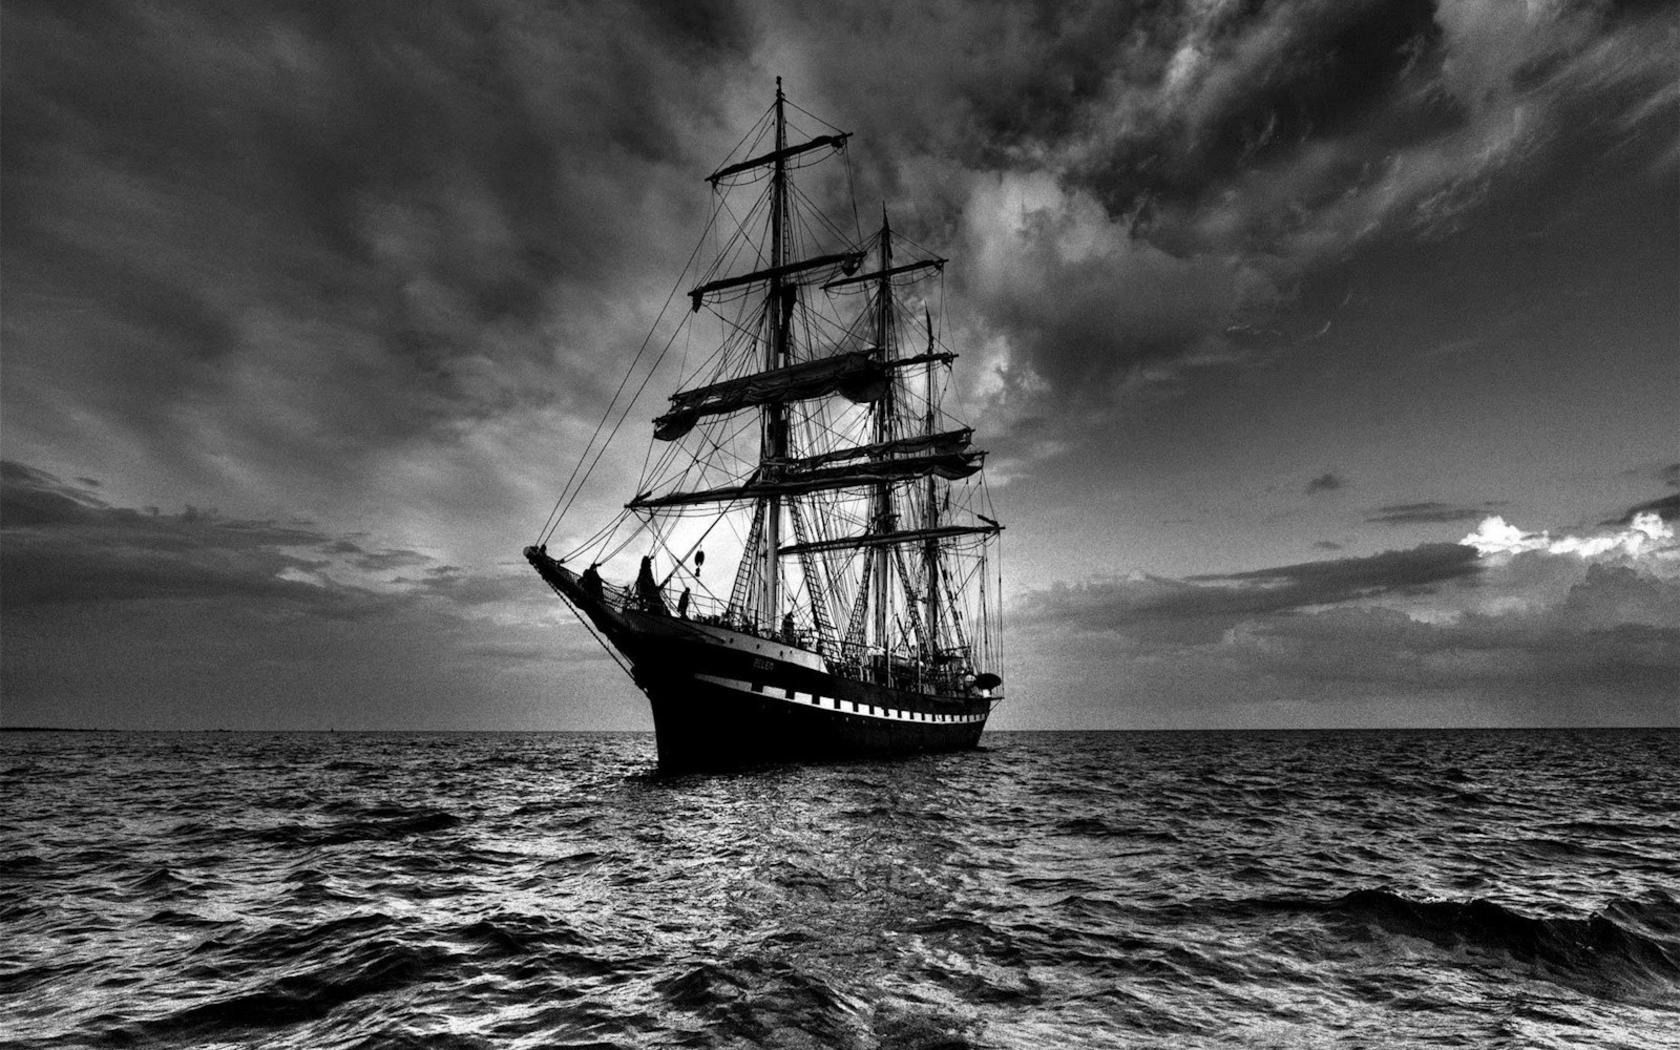 Sailing Ship in Dark 281.41 Kb